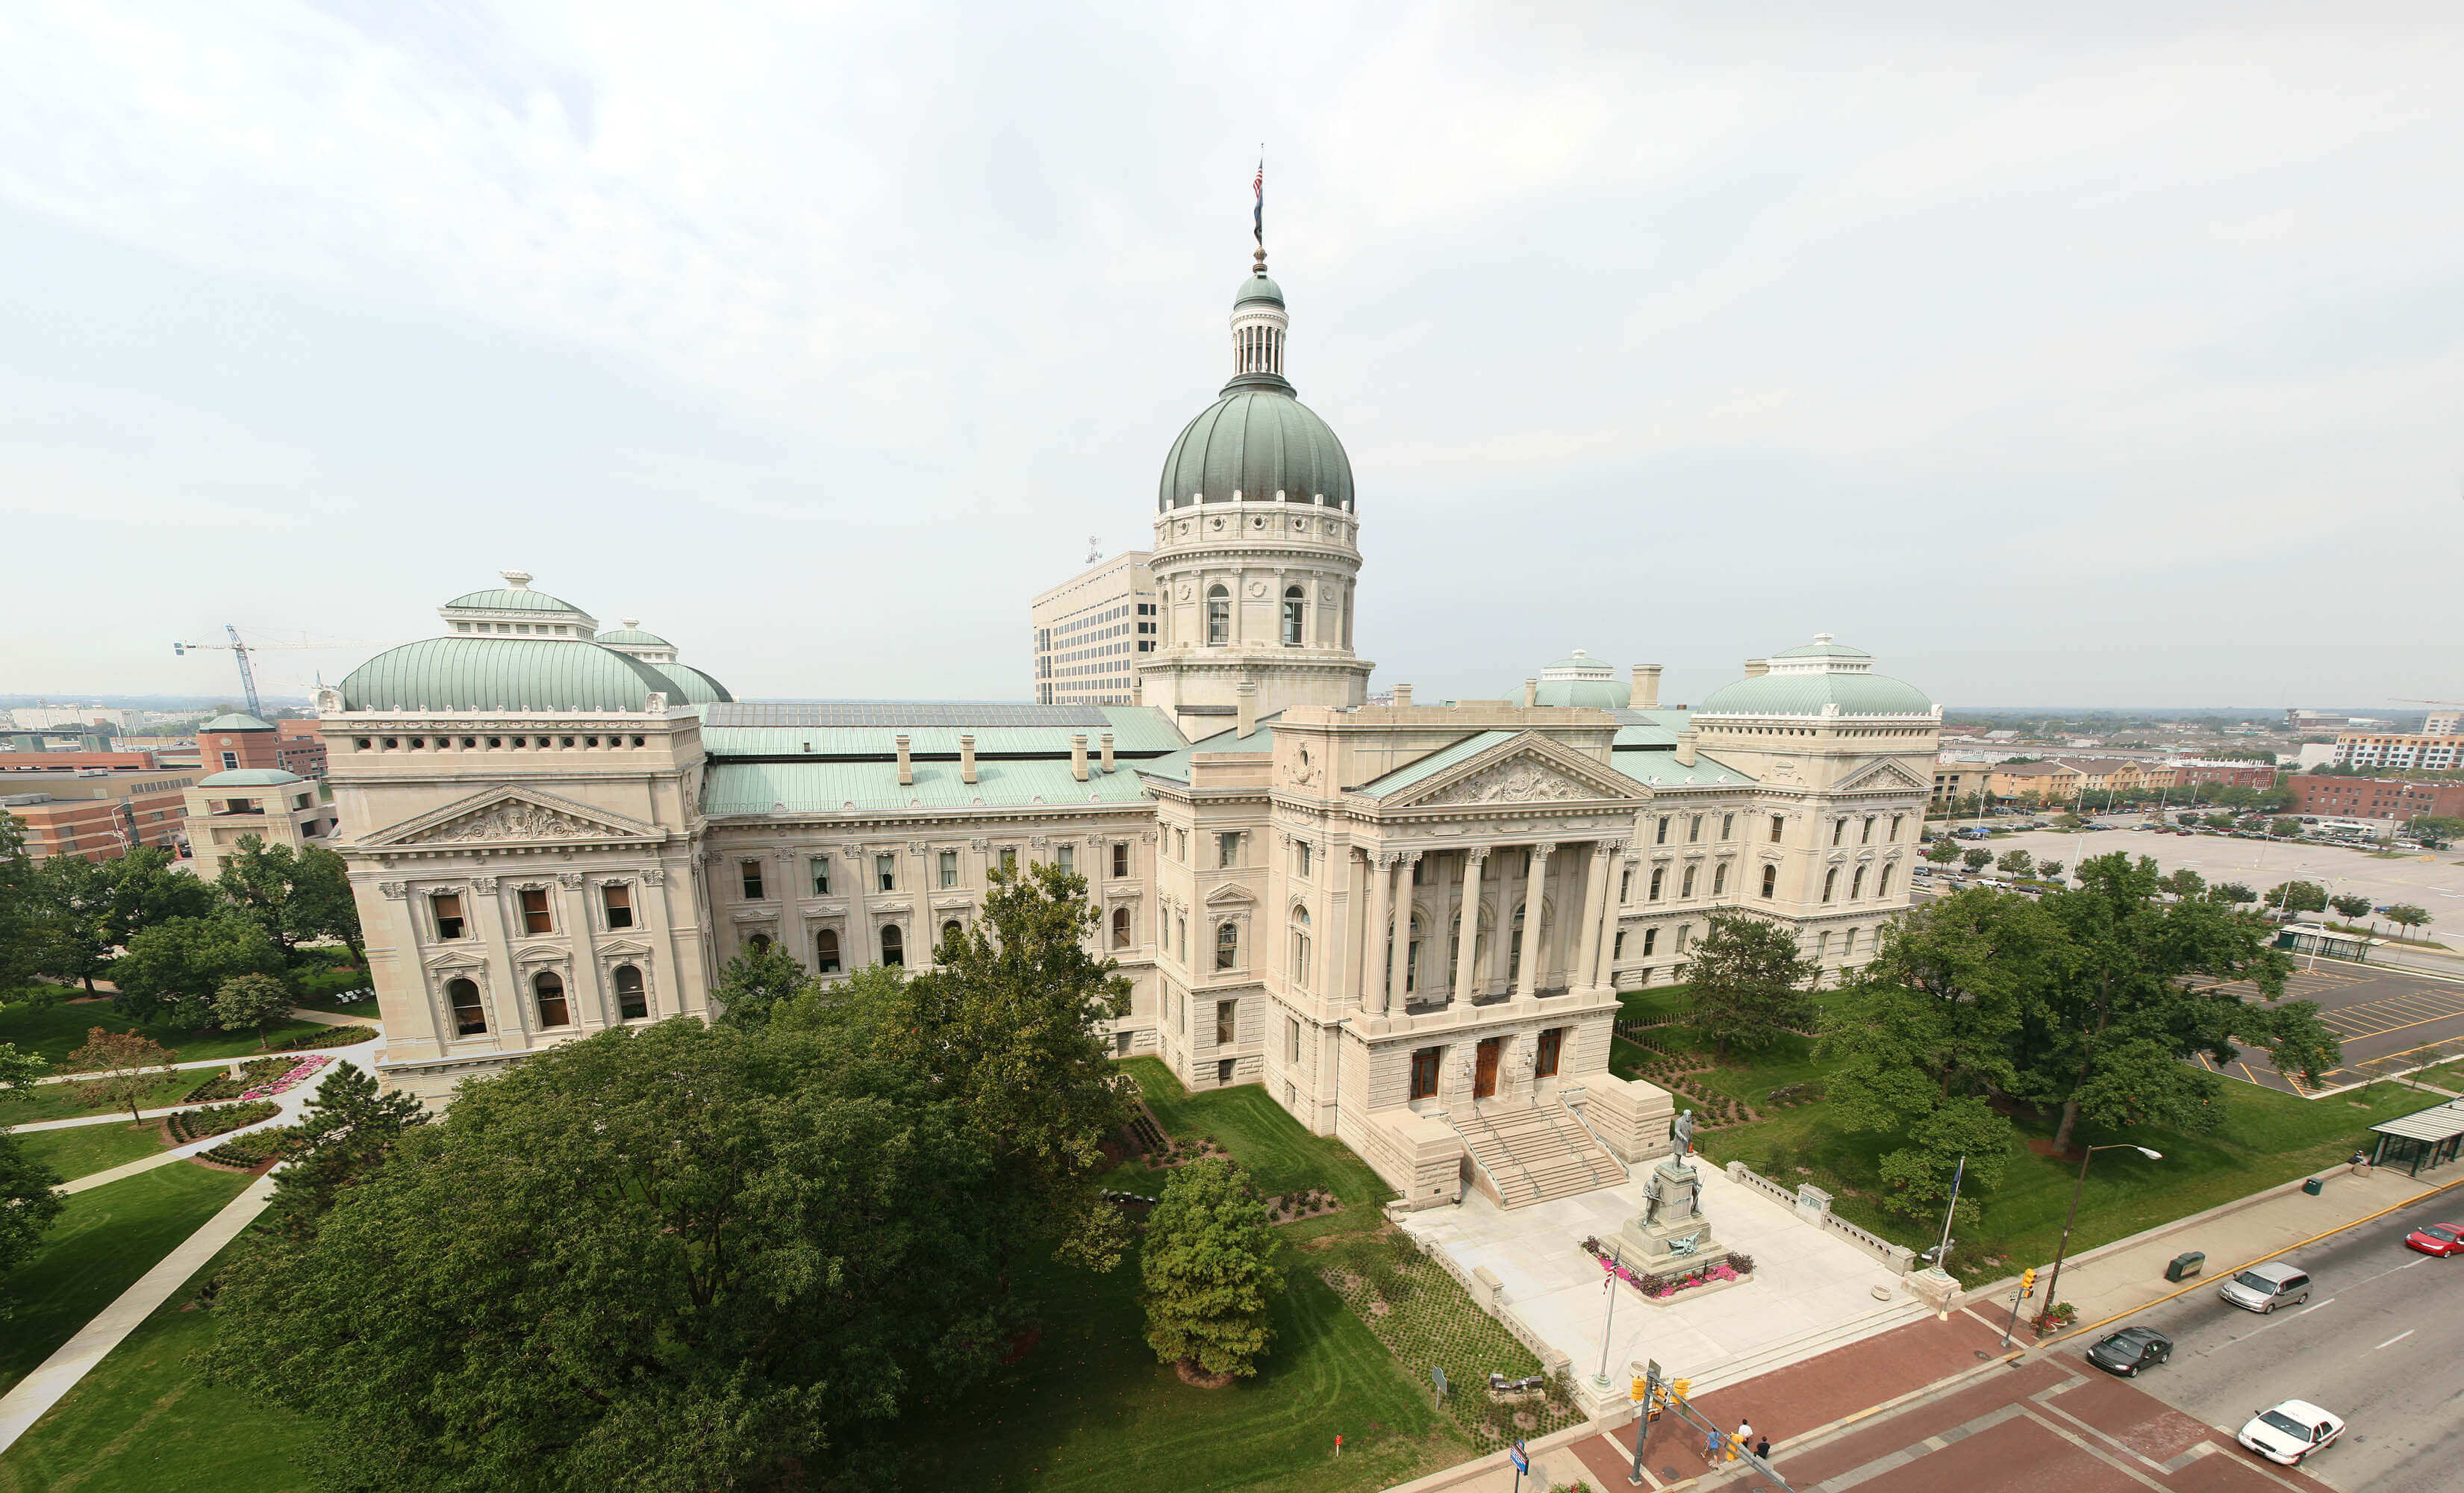 PRESS RELEASE – INDIANA SMOKE FREE ALLIANCE (ISFA) ANNOUNCES SUPPORT OF SB1